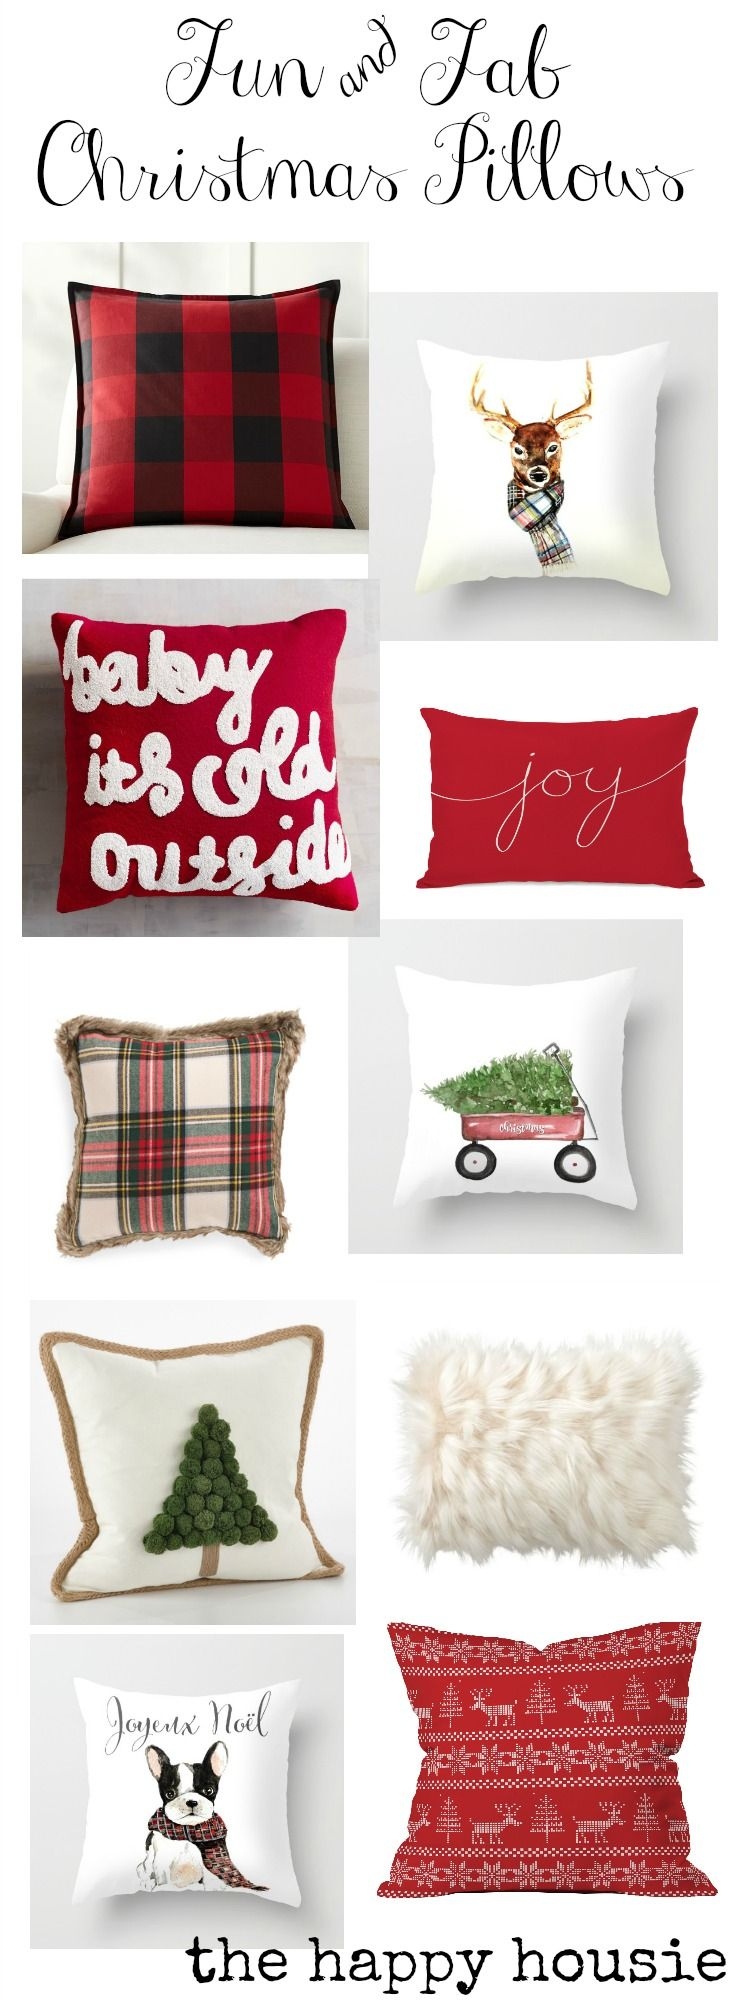 Friday\u0027s Finds: Fun \u0026 Fab Christmas Pillows